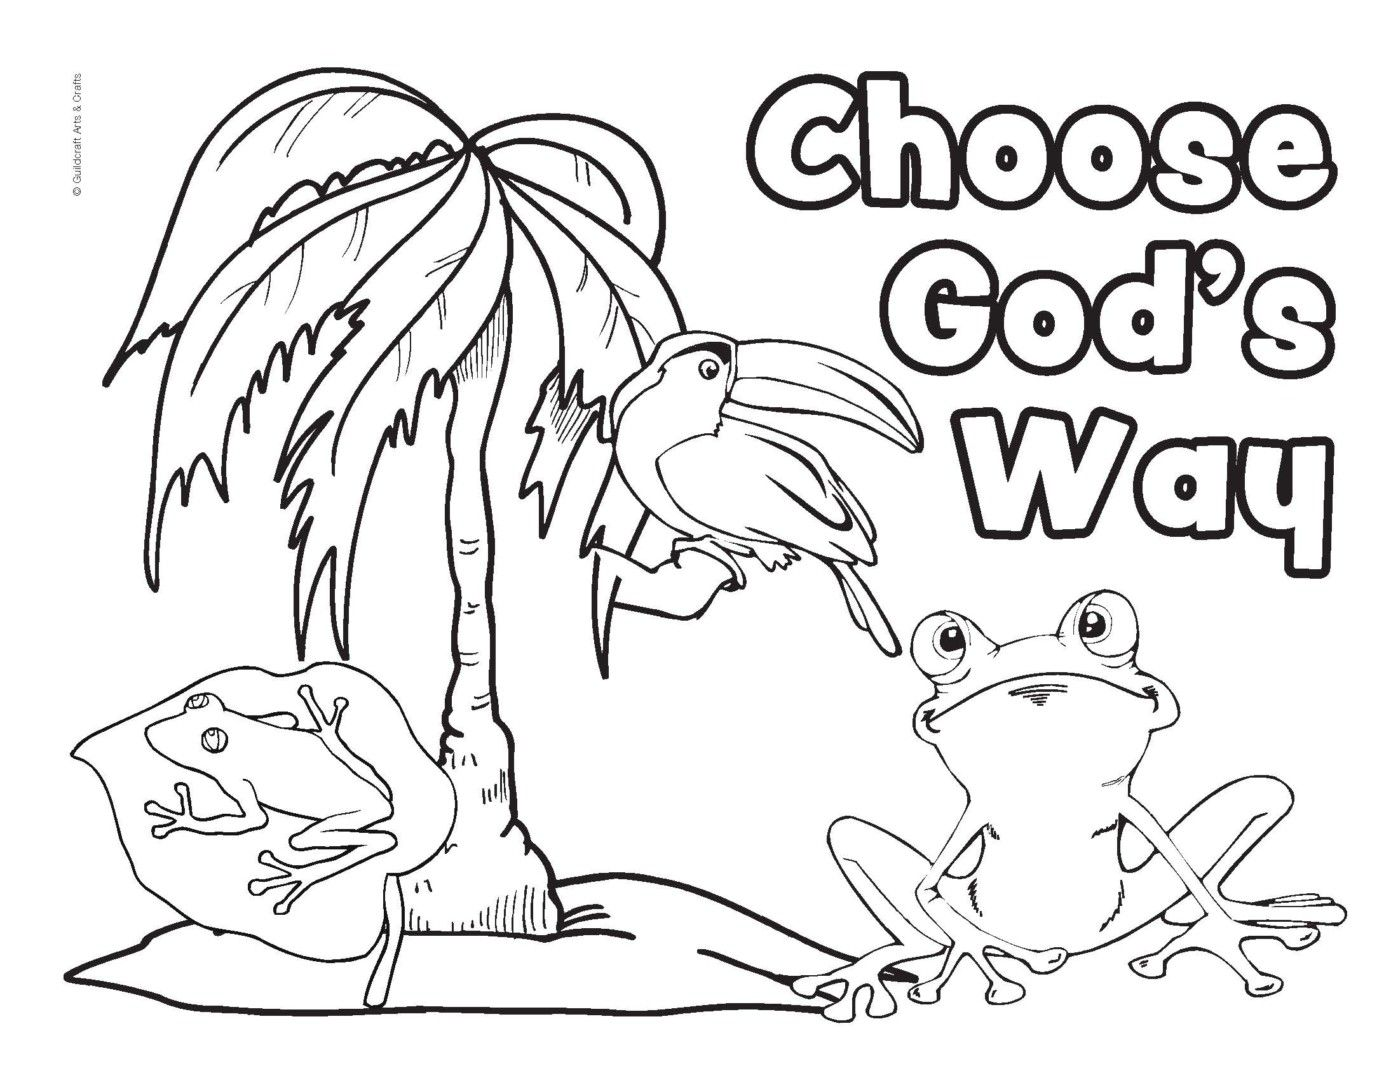 Free Coloring Sheets From Guildcraft Arts Crafts Coloringsco Weird Pages